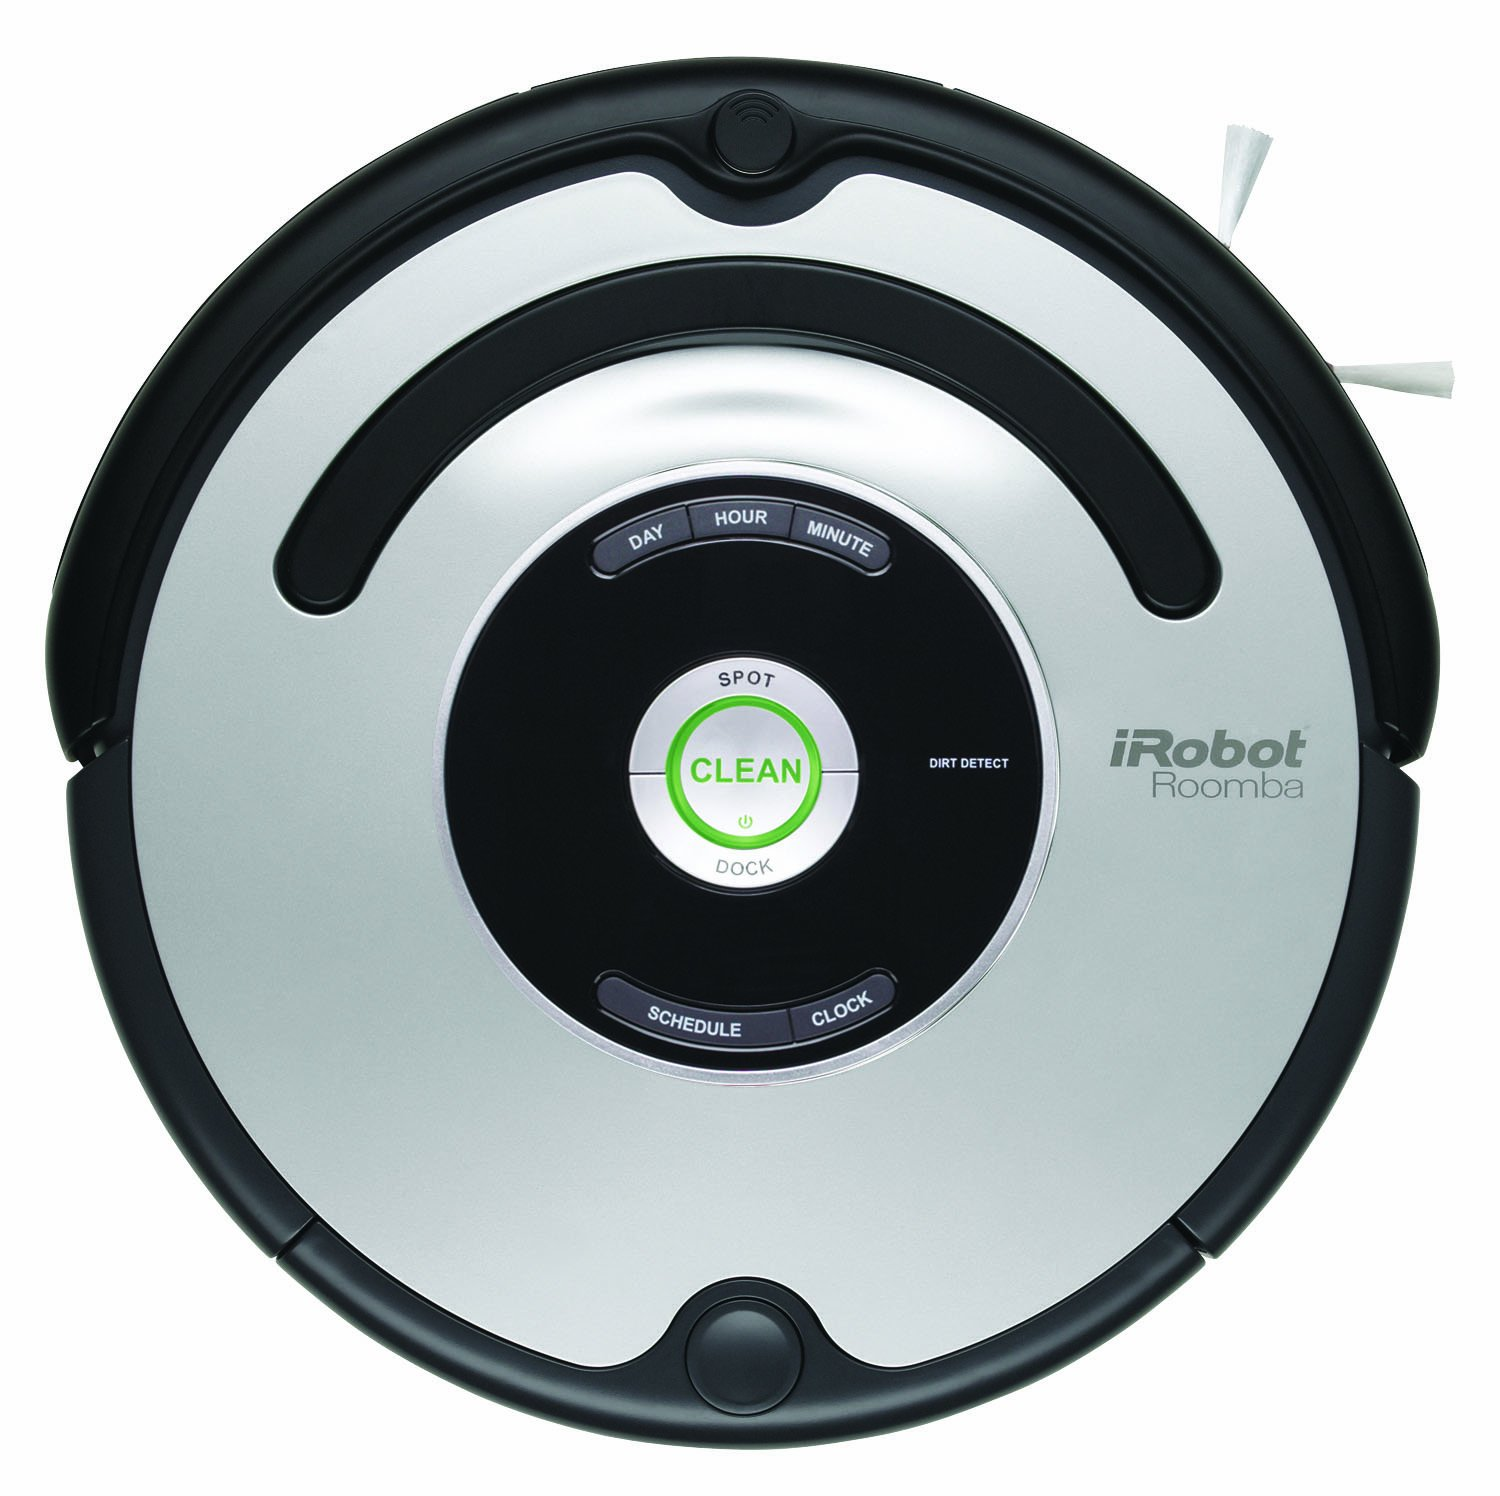 Amazon.com: Roomba: Home & Kitchen